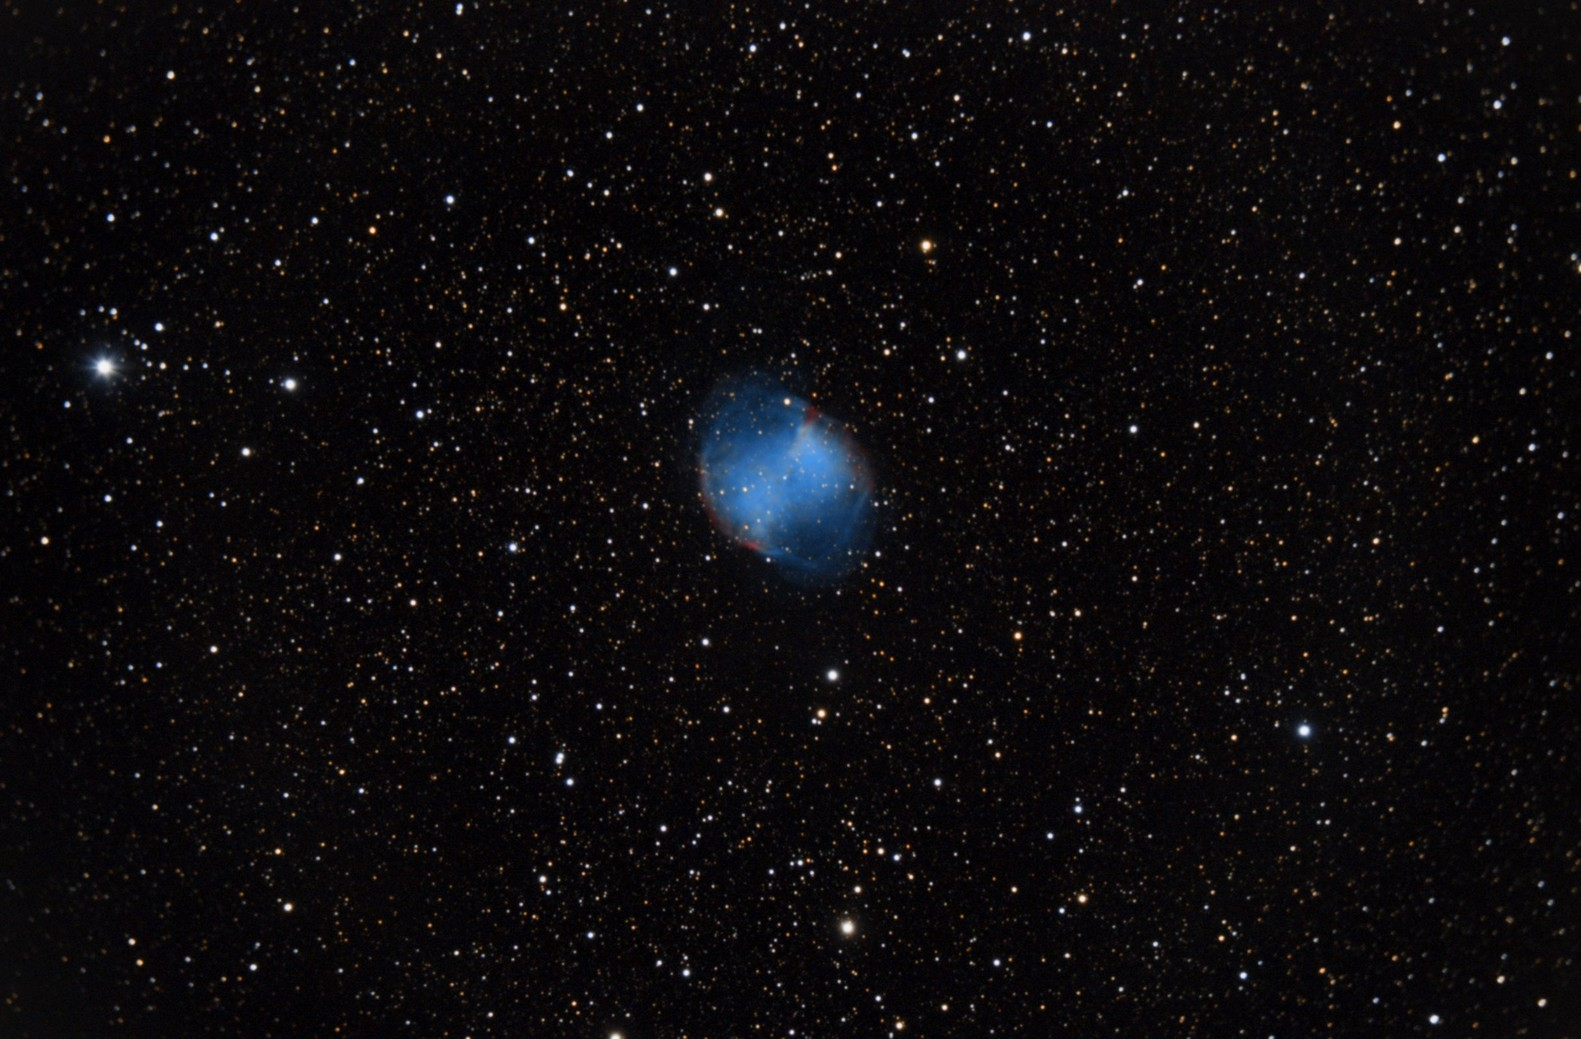 M27 20200518 T200 1260 30x60s 1600iso sortie siril photofiltre